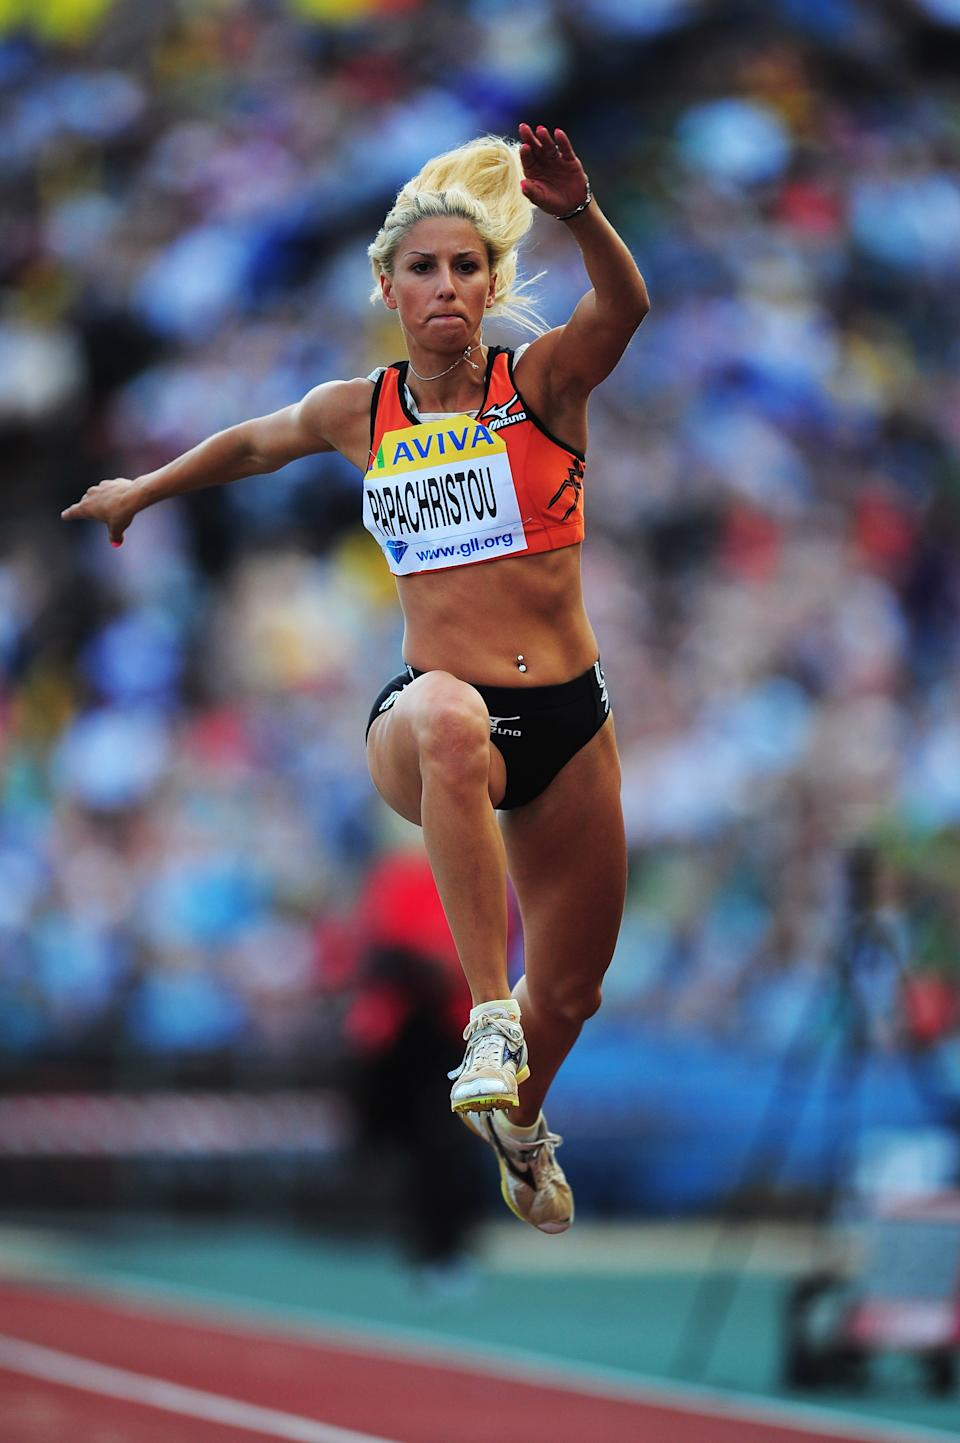 Paraskevi Papachristou of Greece competes in the Womens Triple Jump during the Aviva London Grand Prix at Crystal Palace on August 5, 2011 in London, England. (Photo by Stu Forster/Getty Images)